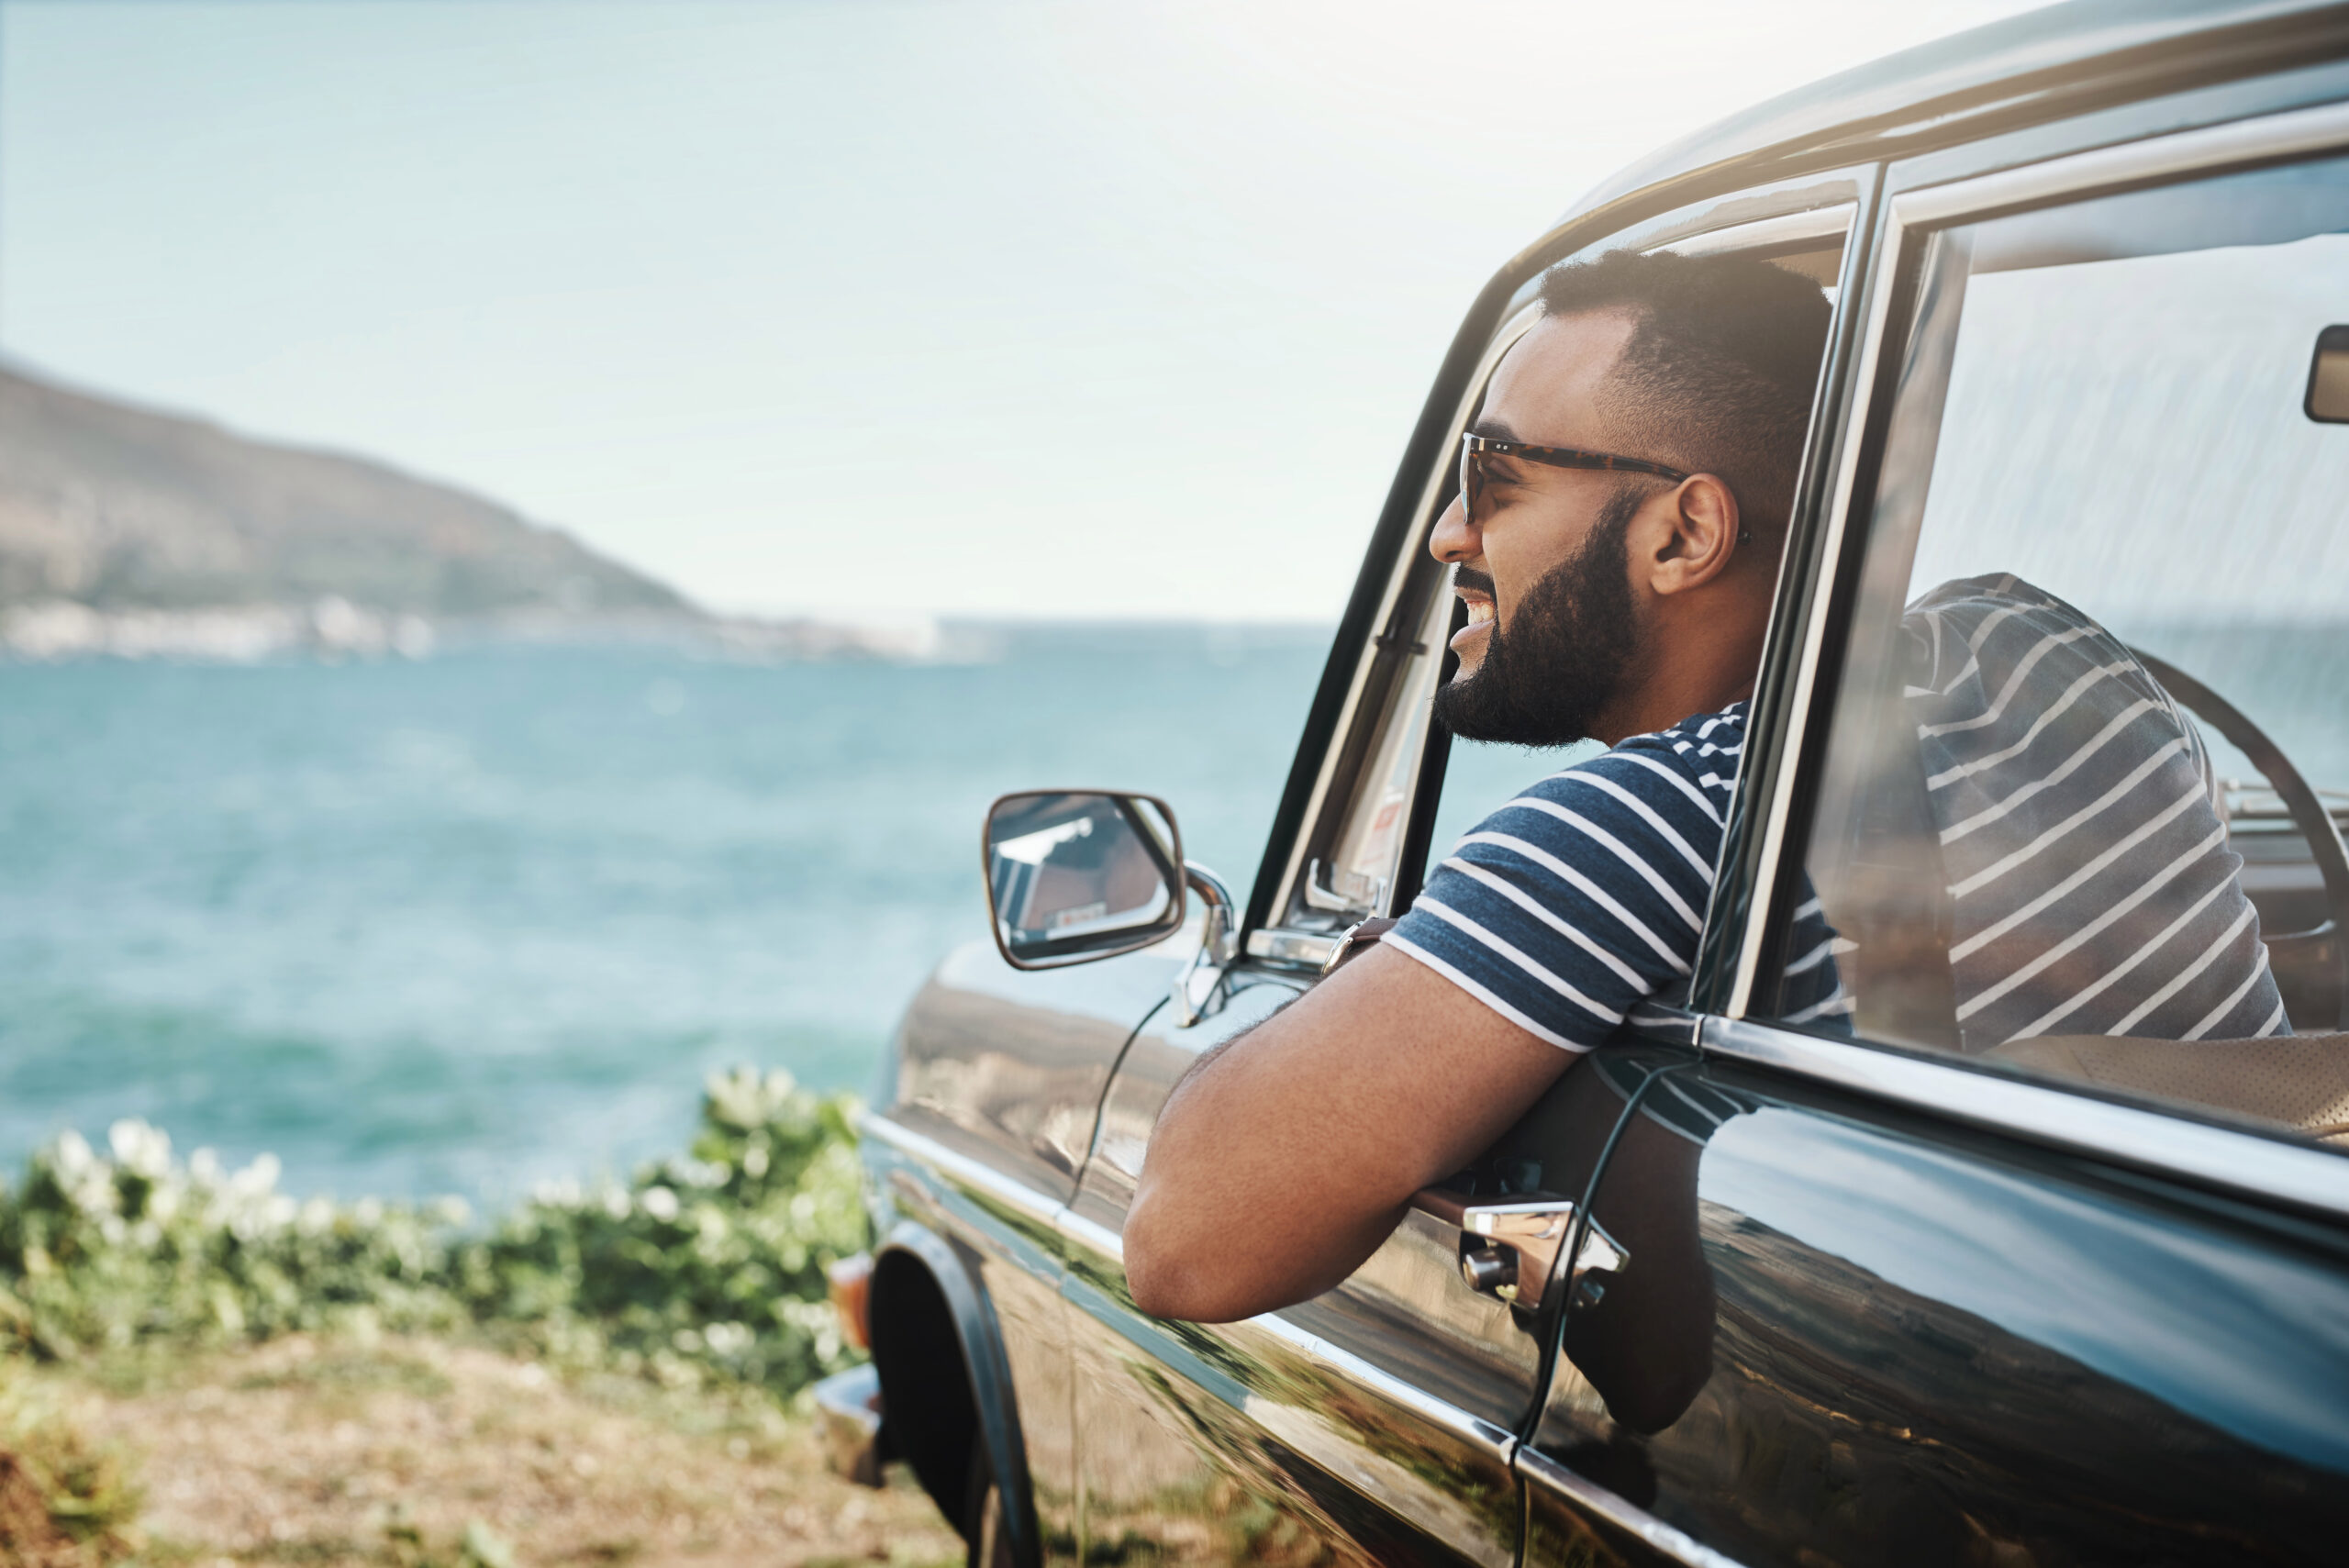 Holidaymakers can take their car abroad to Europe without a green card